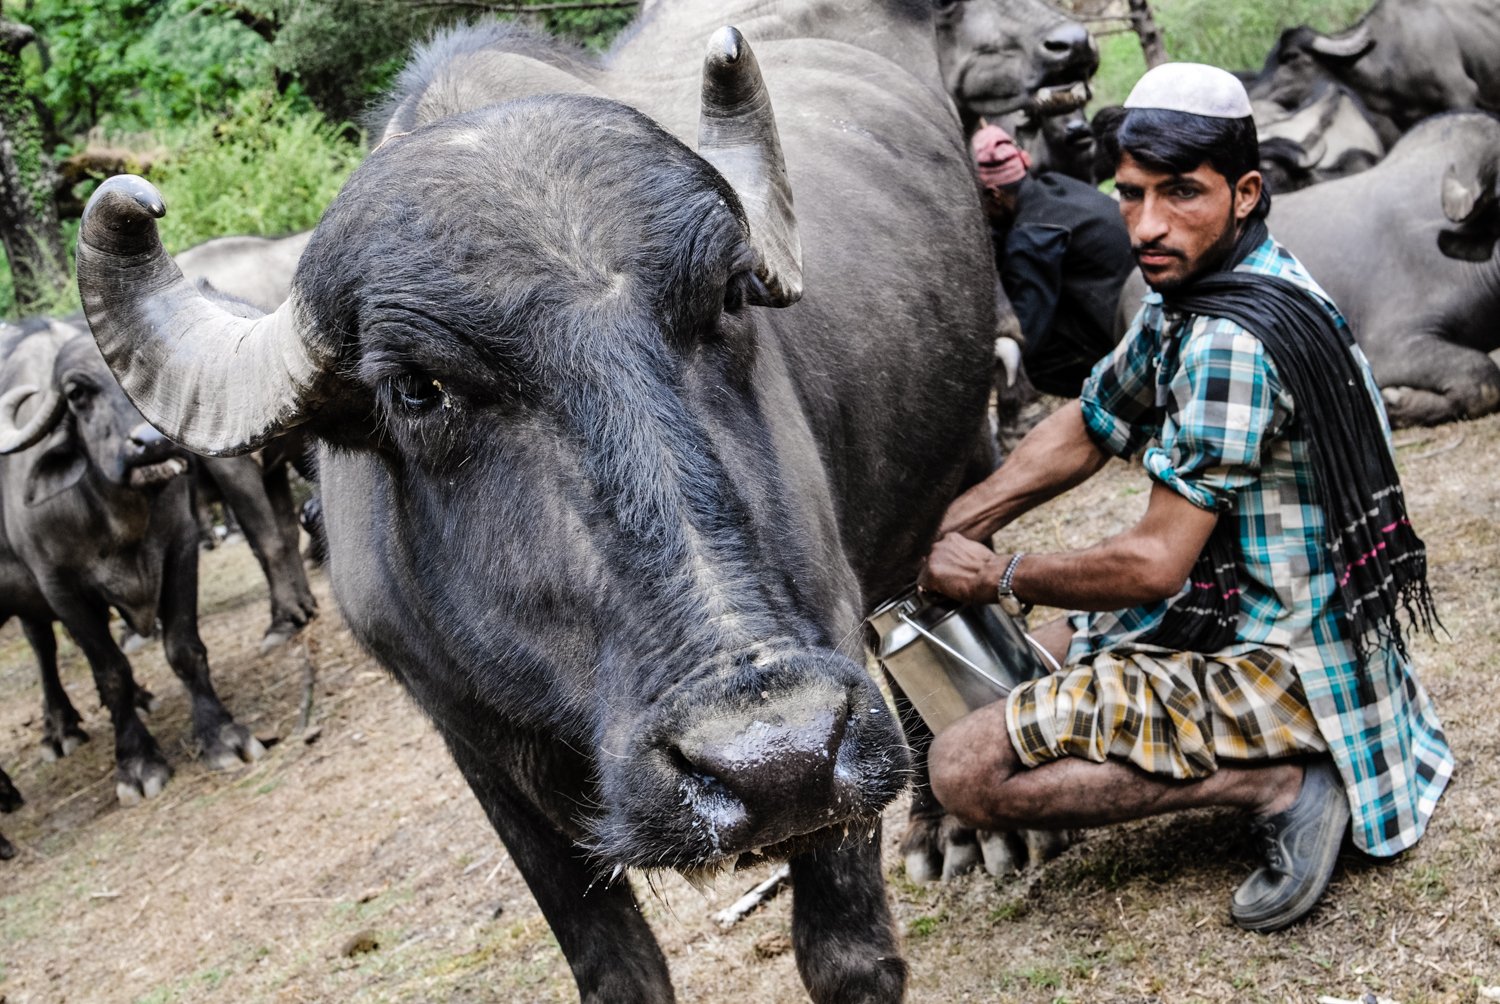 """Traditionally, all Van Gujjars are buffalo herders, men and women alike. Buffalo milk is their main source of income - and protein. Thus, keeping their herd well-fed and healthy is every family's top priority. """"If our buffaloes die, we die,"""" is a common Van Gujjar saying."""